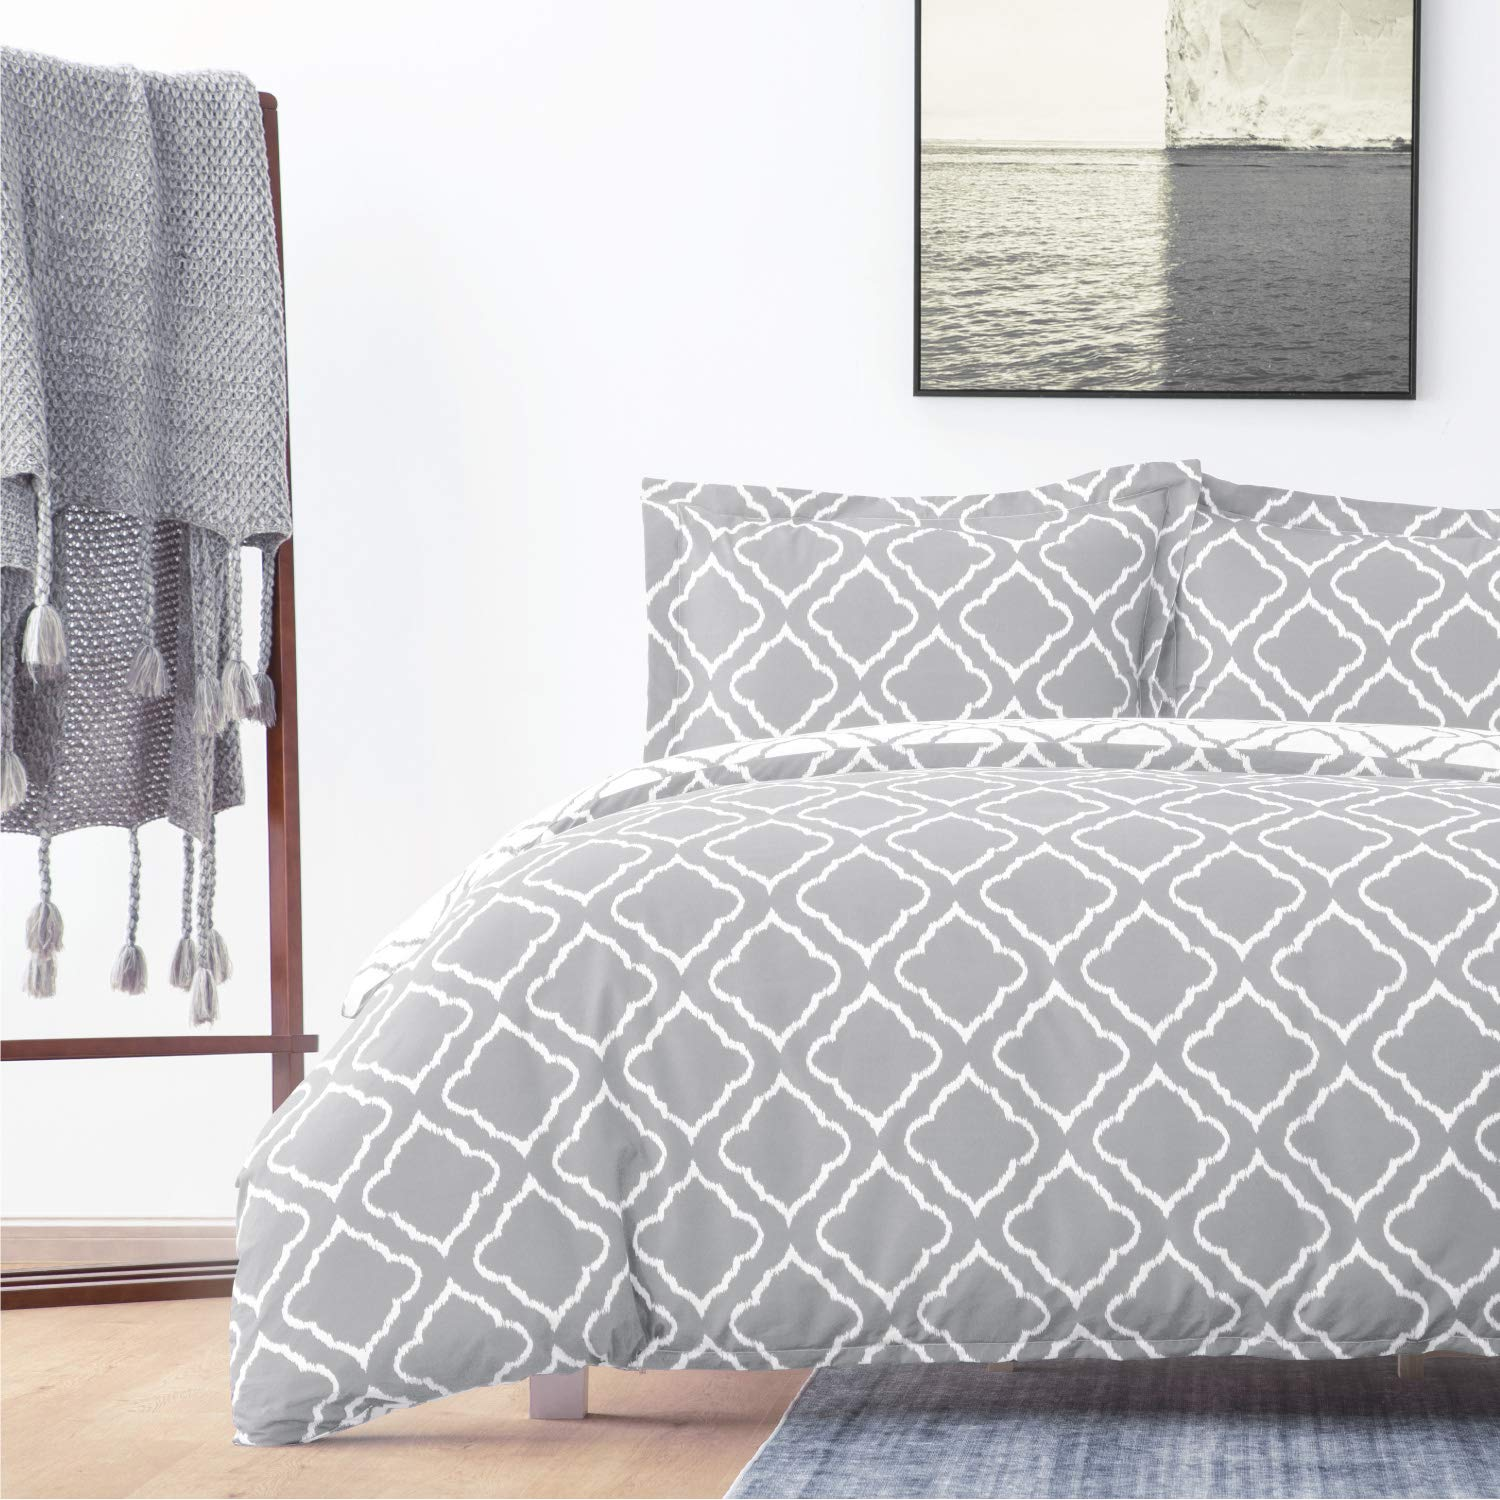 Bedsure Bedding Printed Duvet Cover Set Twin Size 68x90 inches Grey 2 Pieces 1 Duvet Cover  1 Pillow